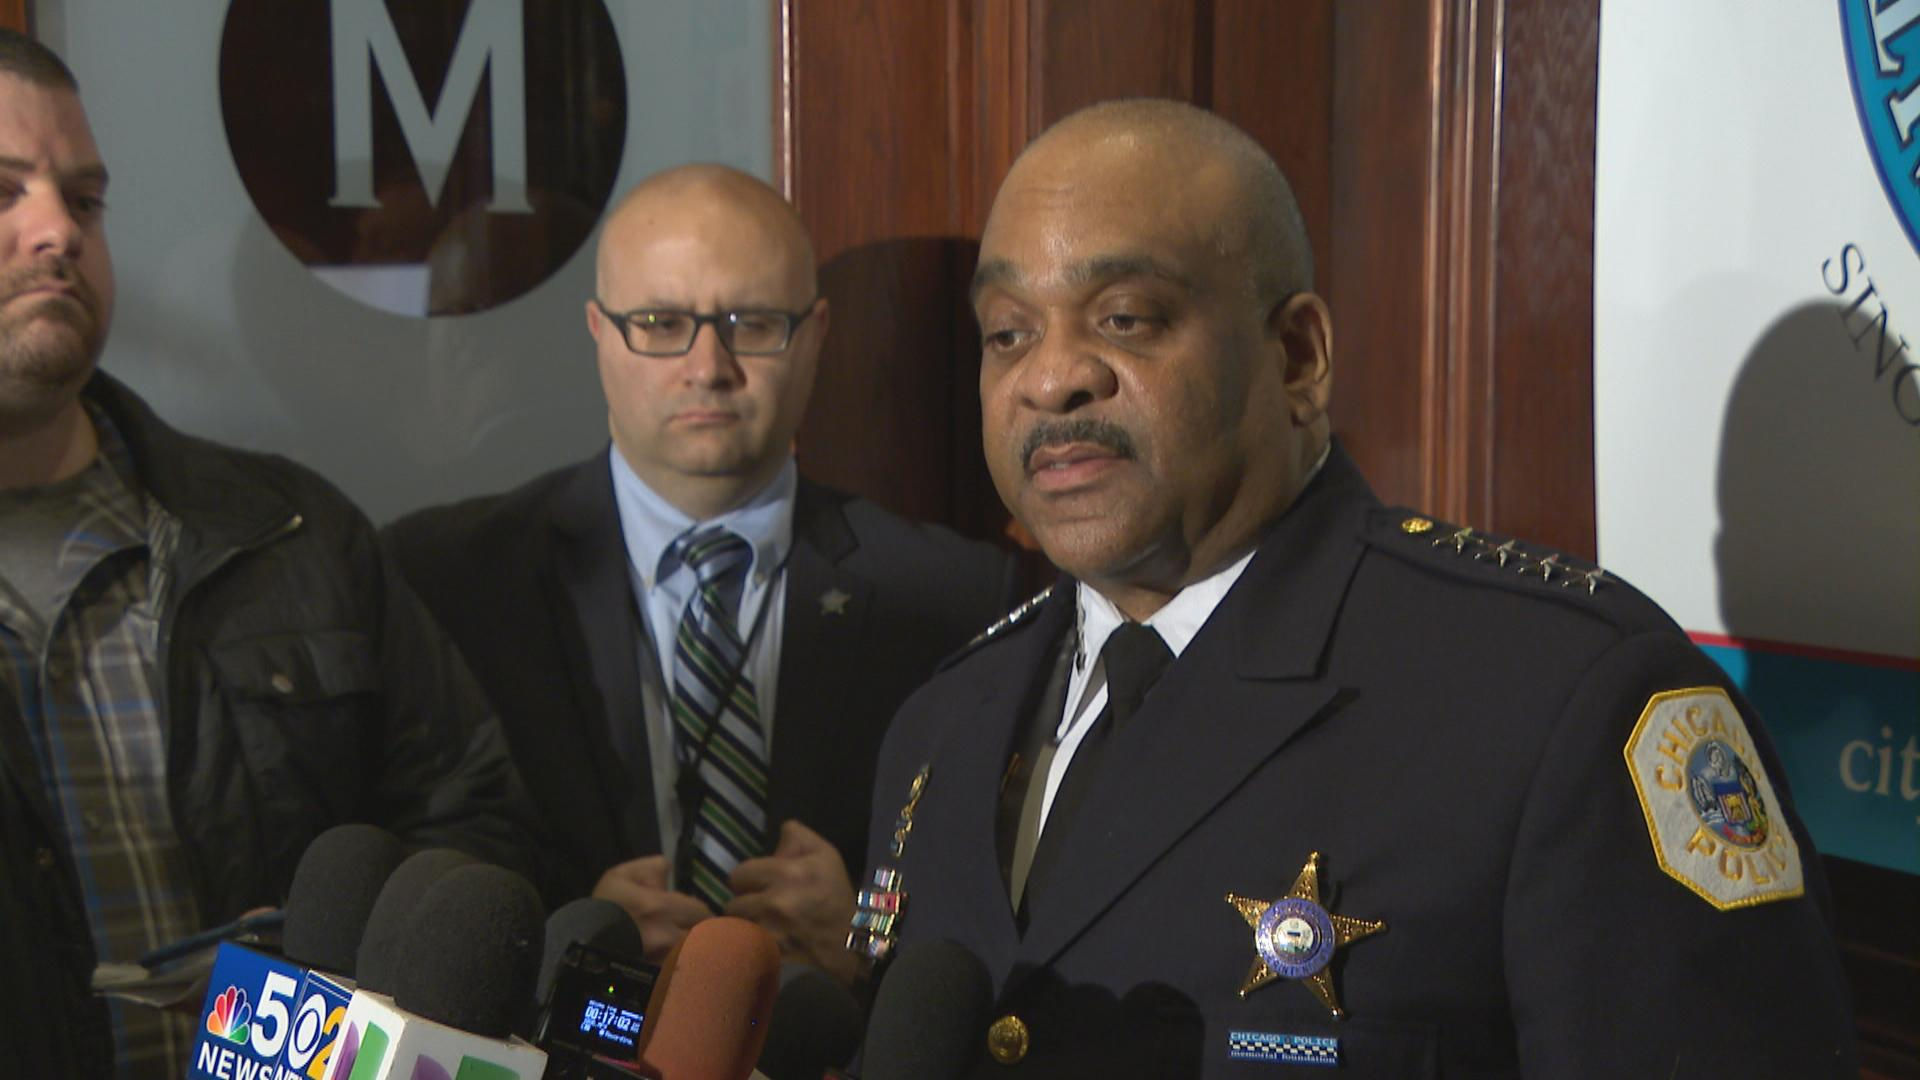 """We recognize that some people may be misidentified,"" Chicago Police Superintendent Eddie Johnson said."